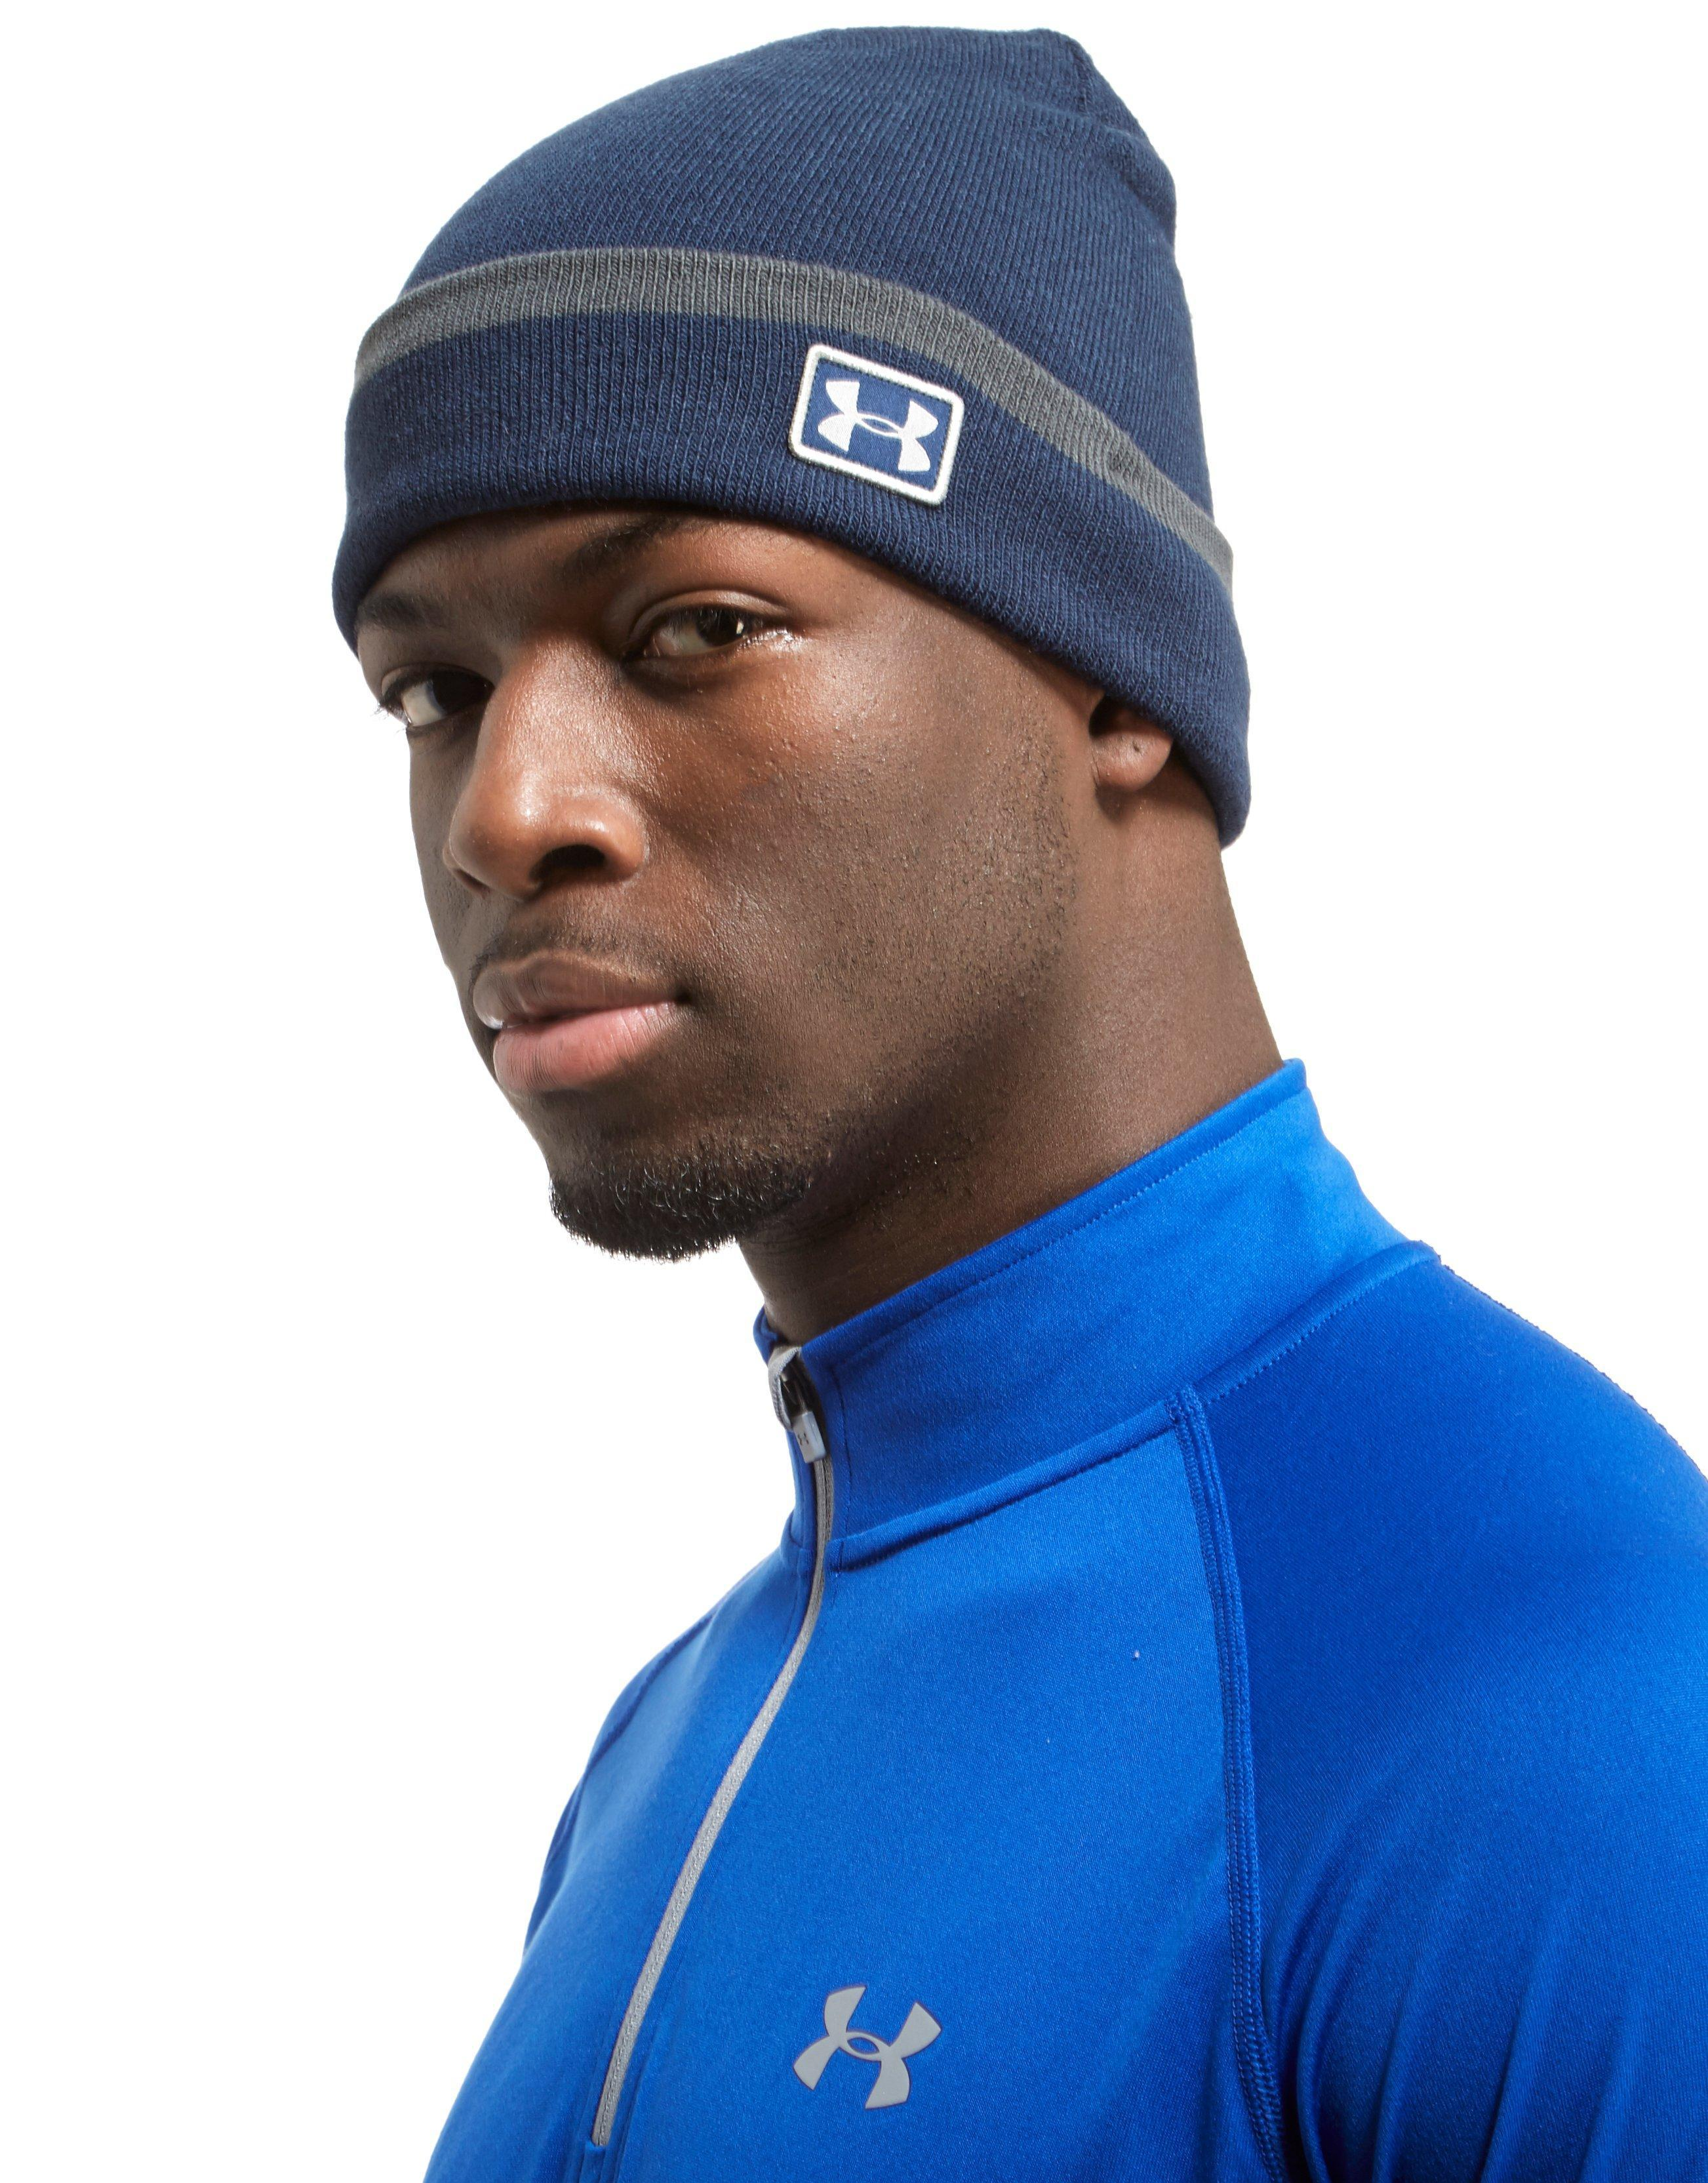 49435ccea16 Lyst - Under Armour Coldgear Infrared Cuff Sideline Beanie Hat in ...